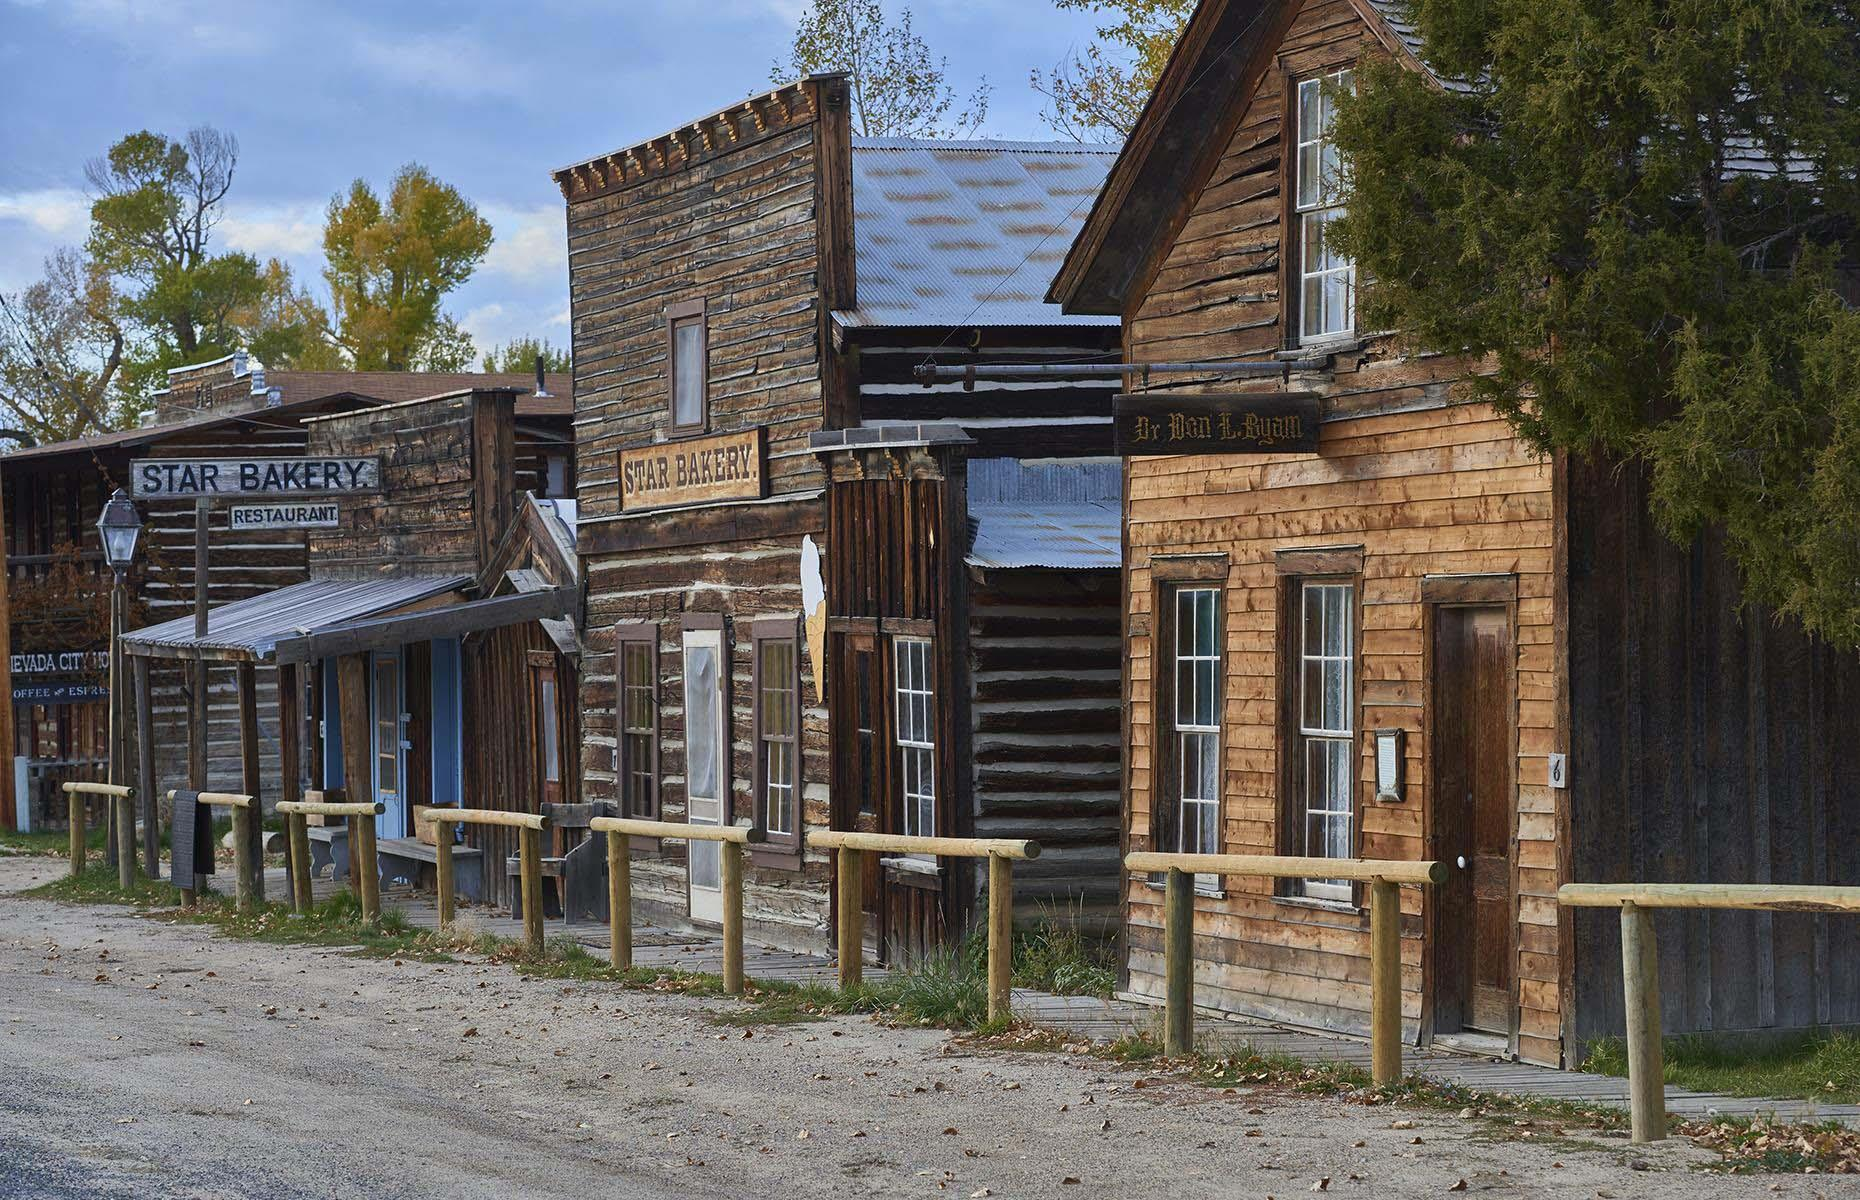 Slide 5 of 46: Just 1.5 miles (2.4km) from Virginia City lies another Gold Rush town turned museum. Bought by the Bovey family, who restored and preserved original buildings and their interiors between 1945 and 1978, the whole town is now a living museum.